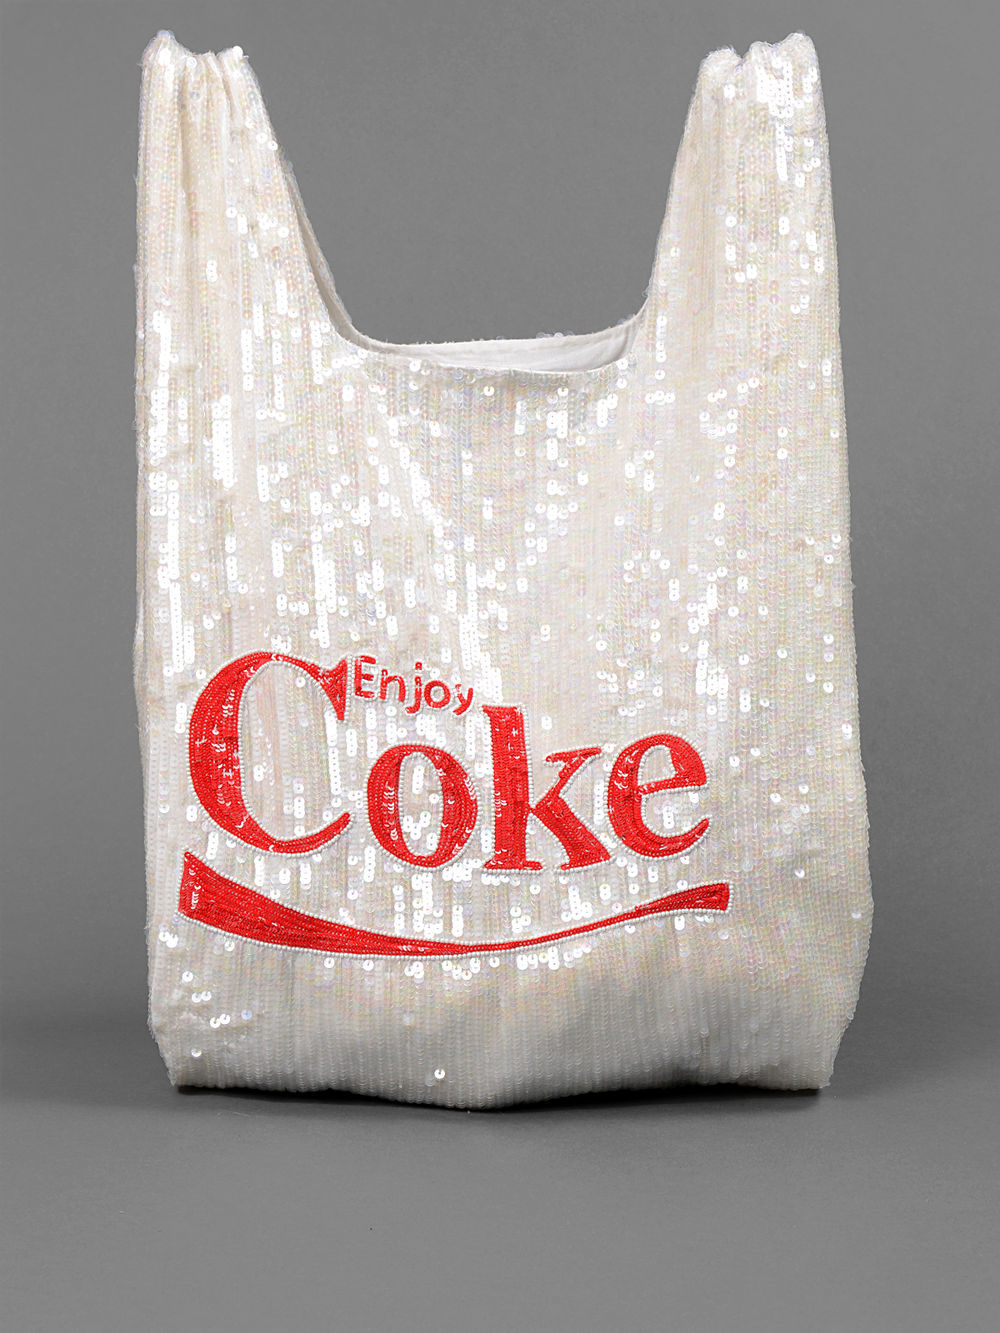 "ASHISH ""ENJOY COKE"" GROCERY BAG                                                                                                             PRICE € 330    You can get it here >>    ASHISH  << Click"